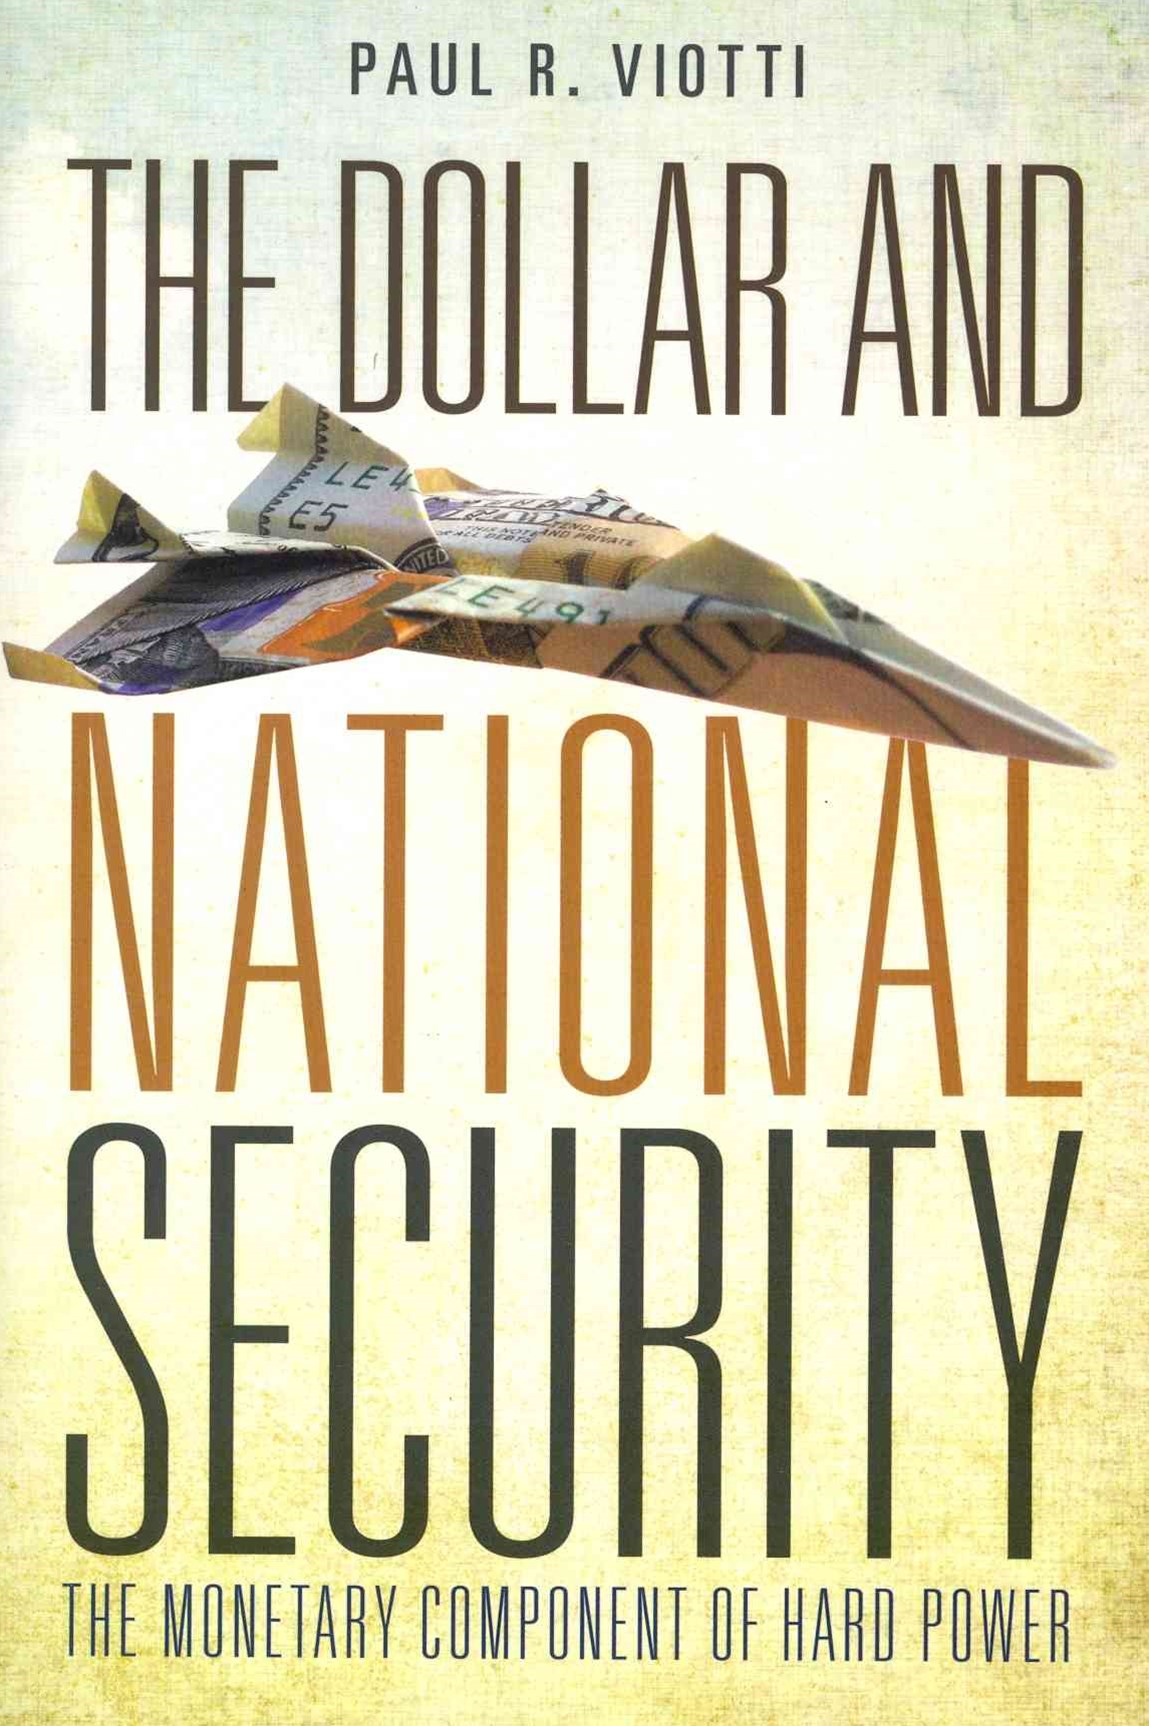 The Dollar and National Security